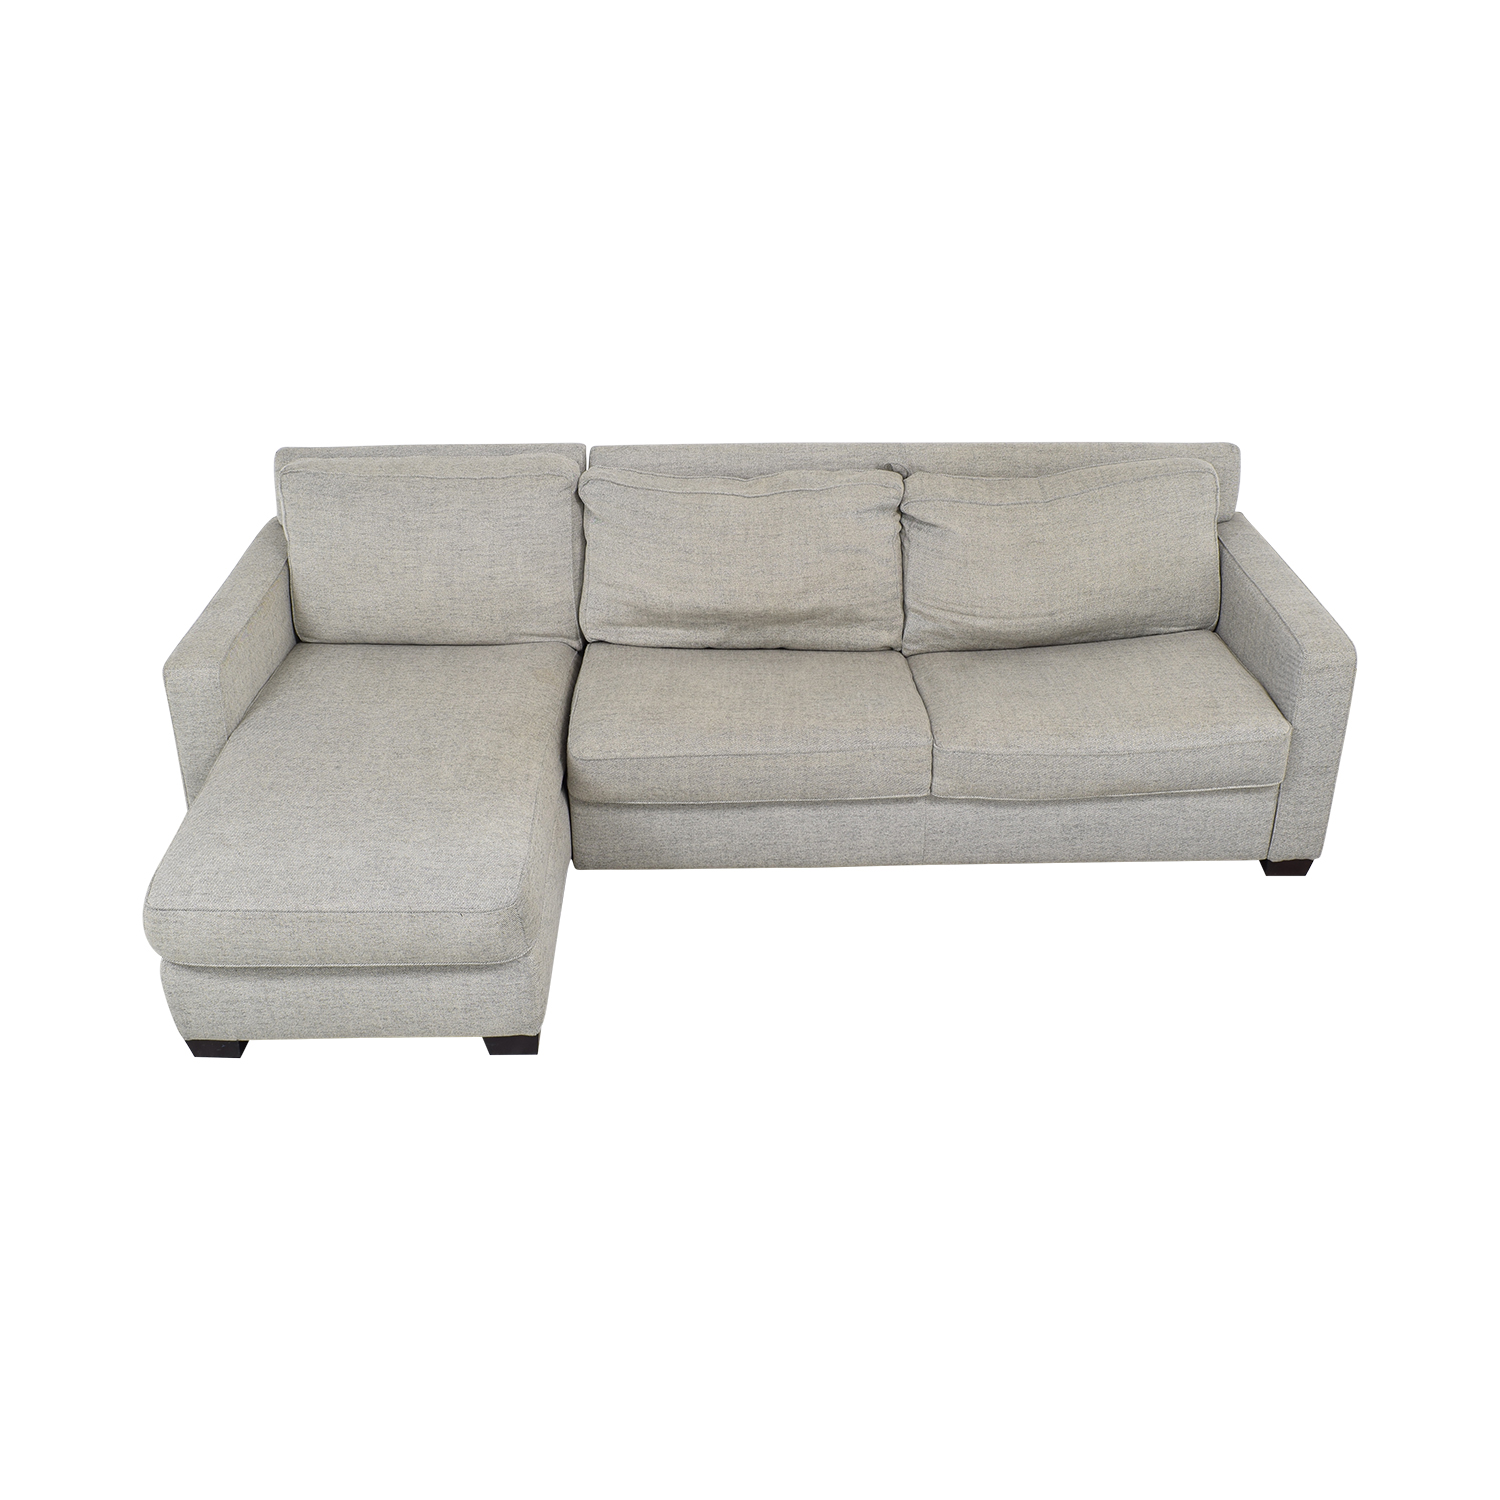 West Elm West Elm Henry 2-Piece Full Sleeper Sectional with Storage grey